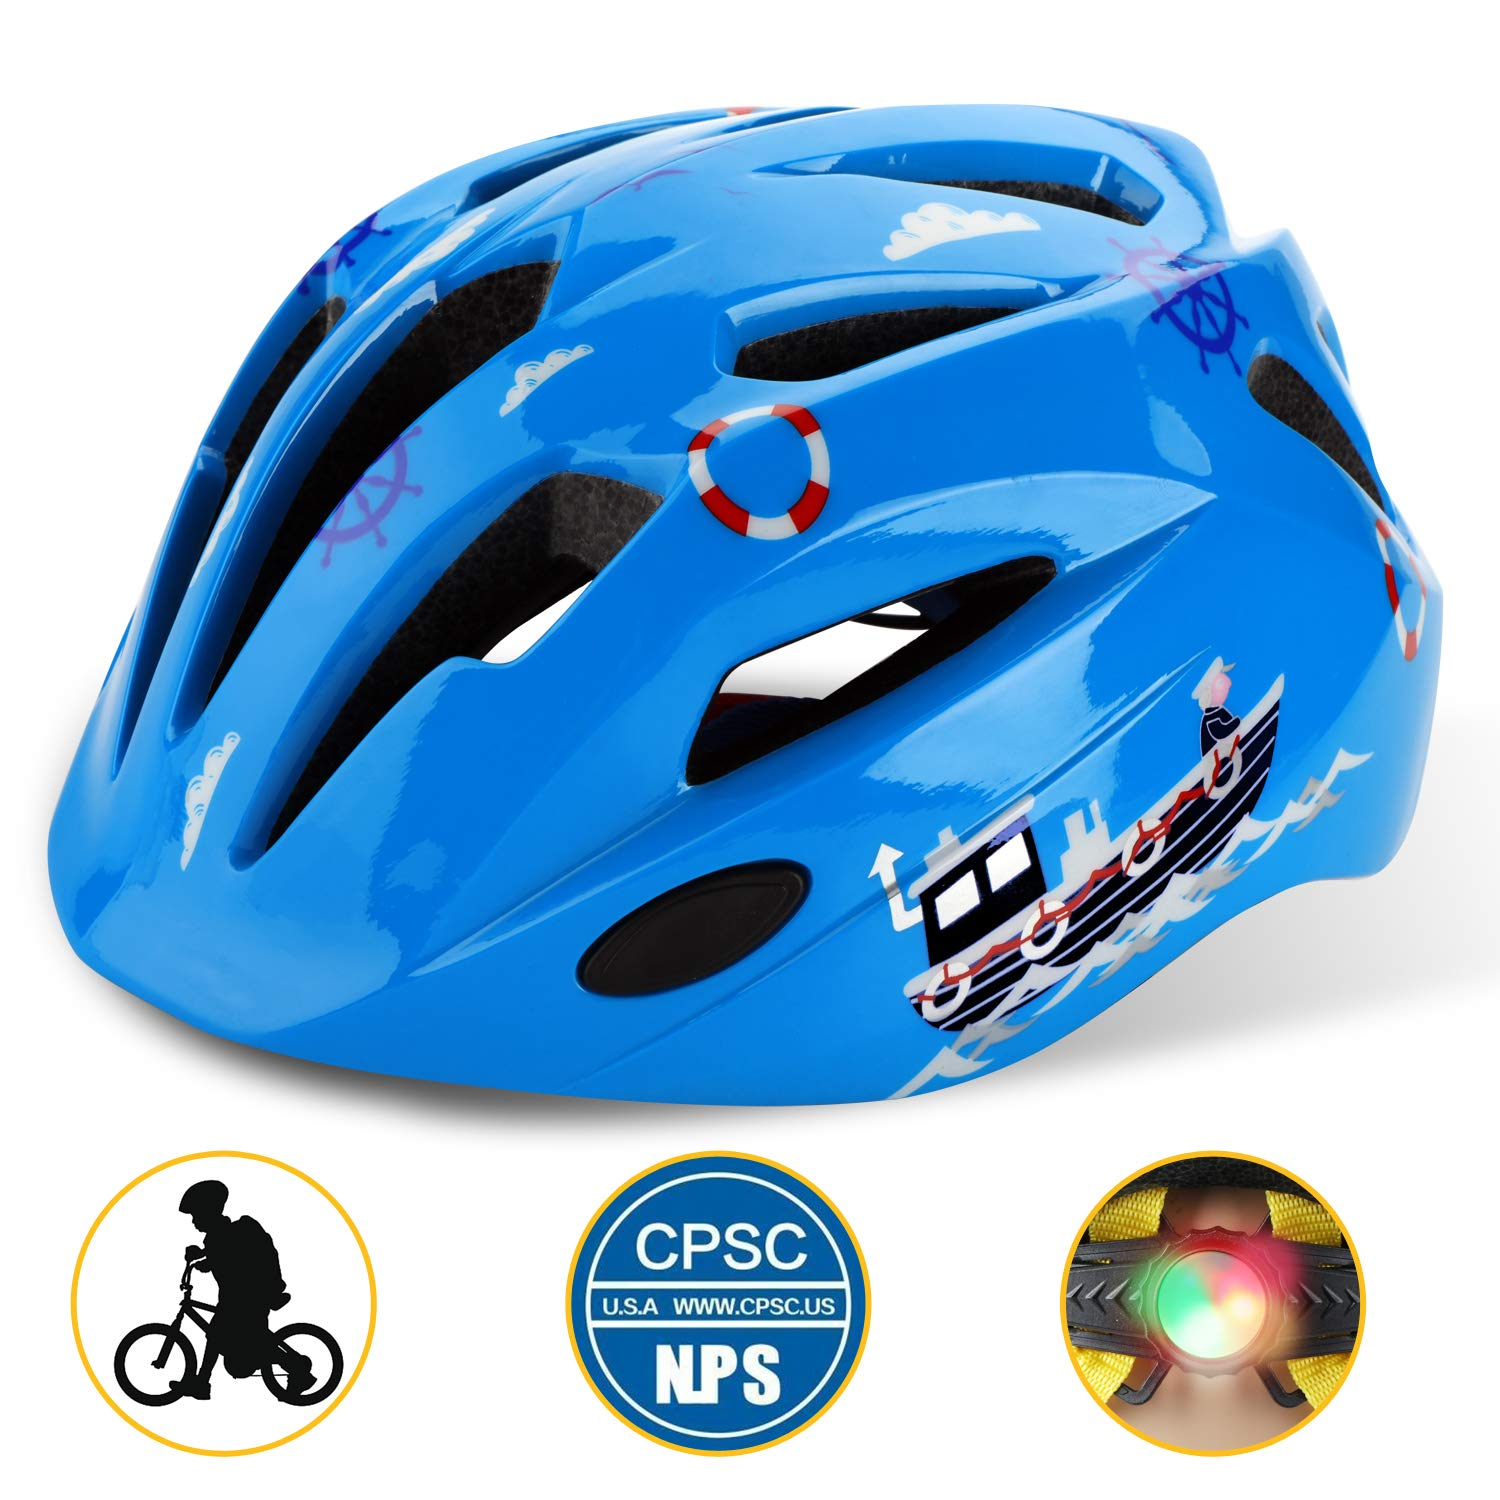 Shinmax Kids Bike Helmet, CPC Certified Children Safety Helmet with LED Light for Boys&Girls Cycling Skating Riding Scooter(Blue2) by Shinmax